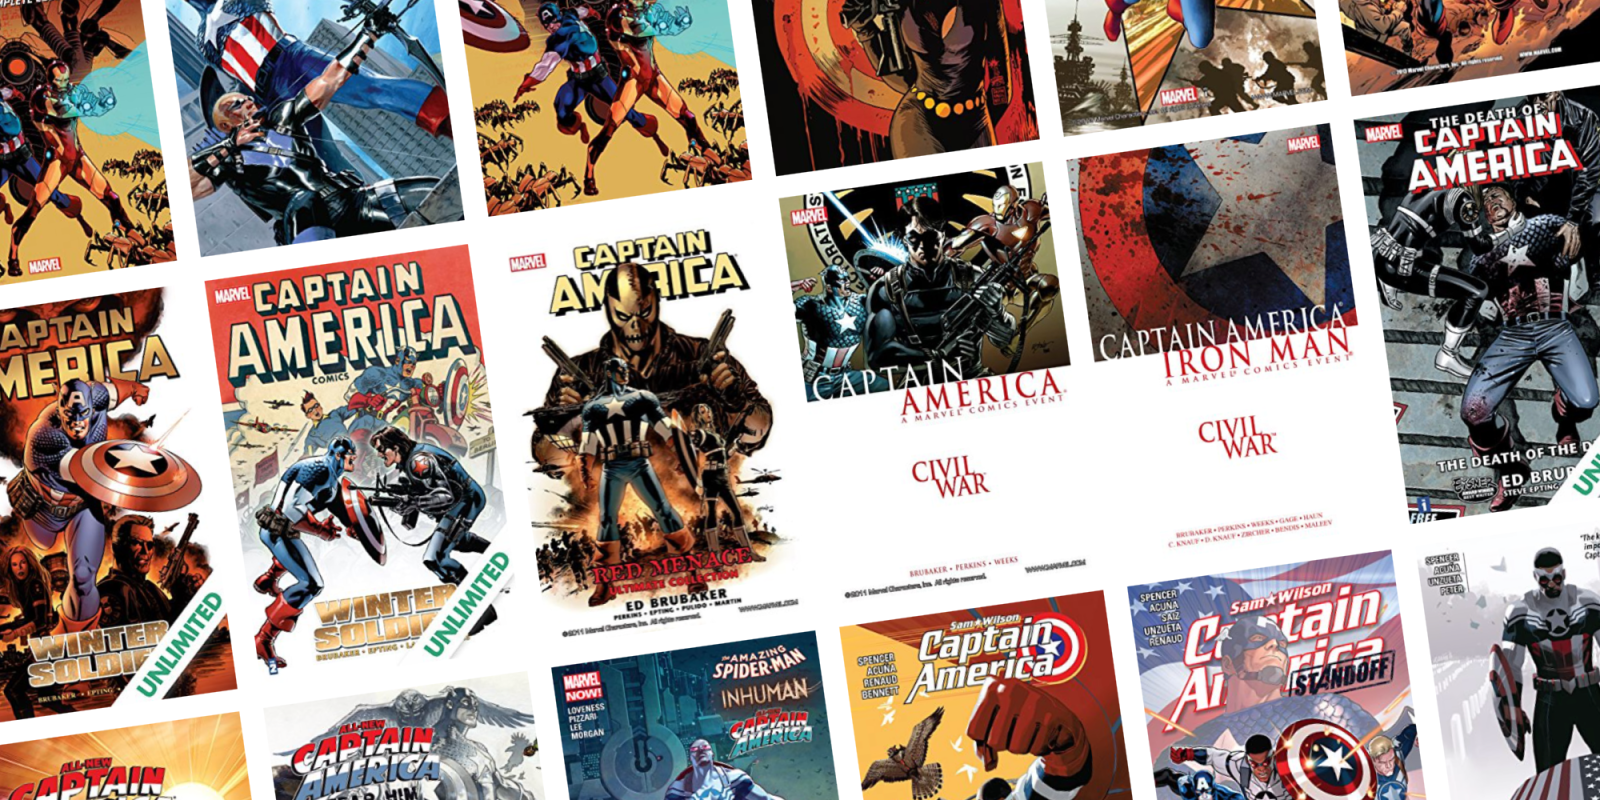 Celebrate Memorial Day with up to 67% off Captain America graphic novels + issues at ComiXology